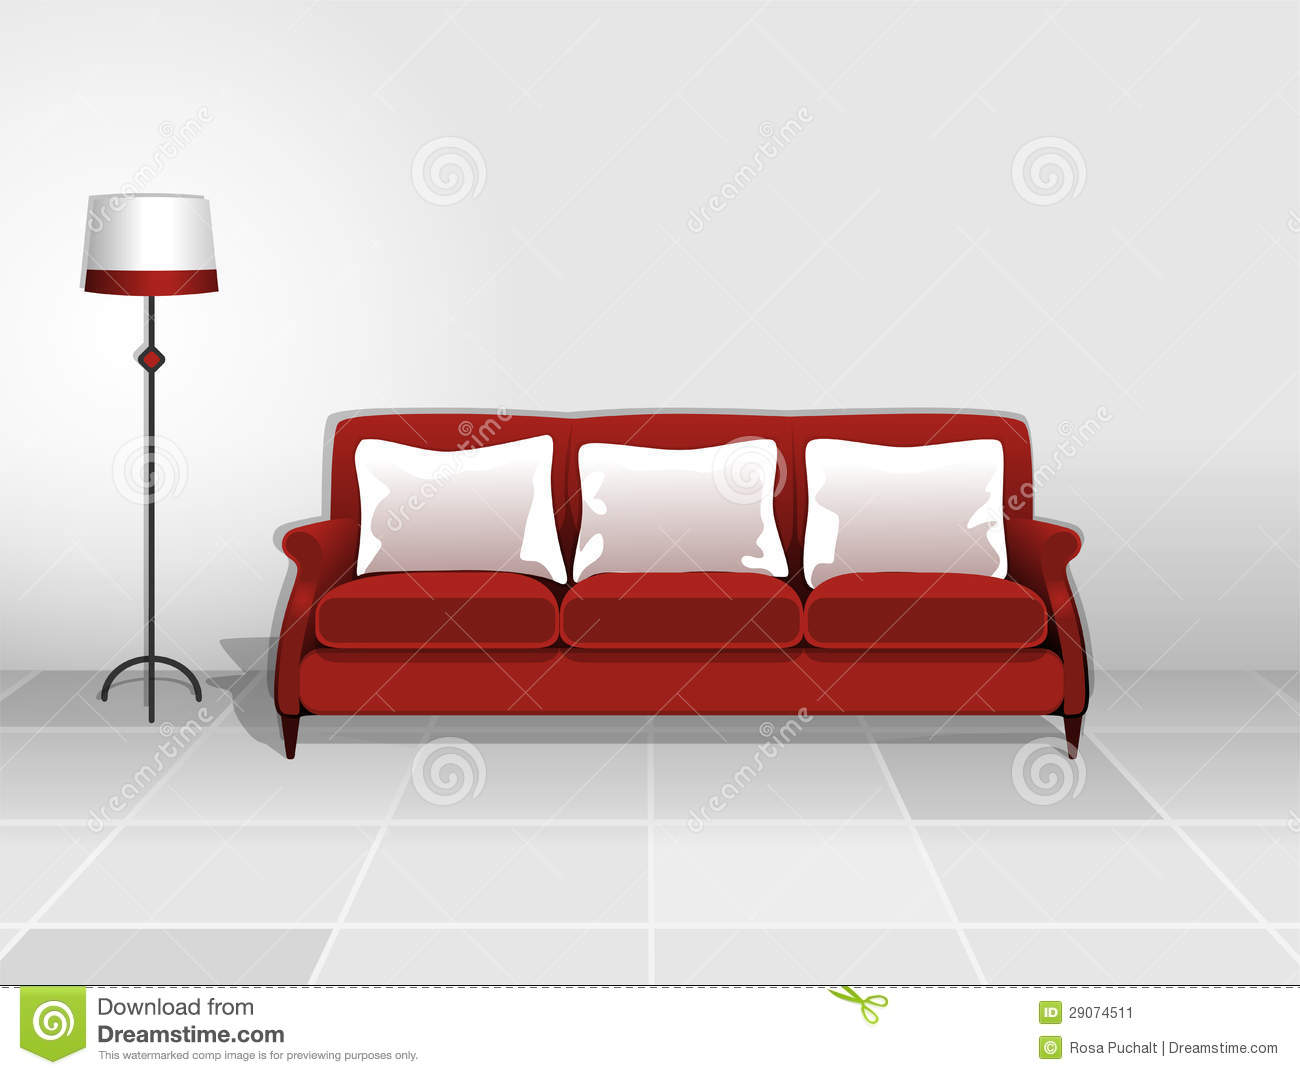 rotes sofa mit wei en kissen stockbild bild 29074511. Black Bedroom Furniture Sets. Home Design Ideas